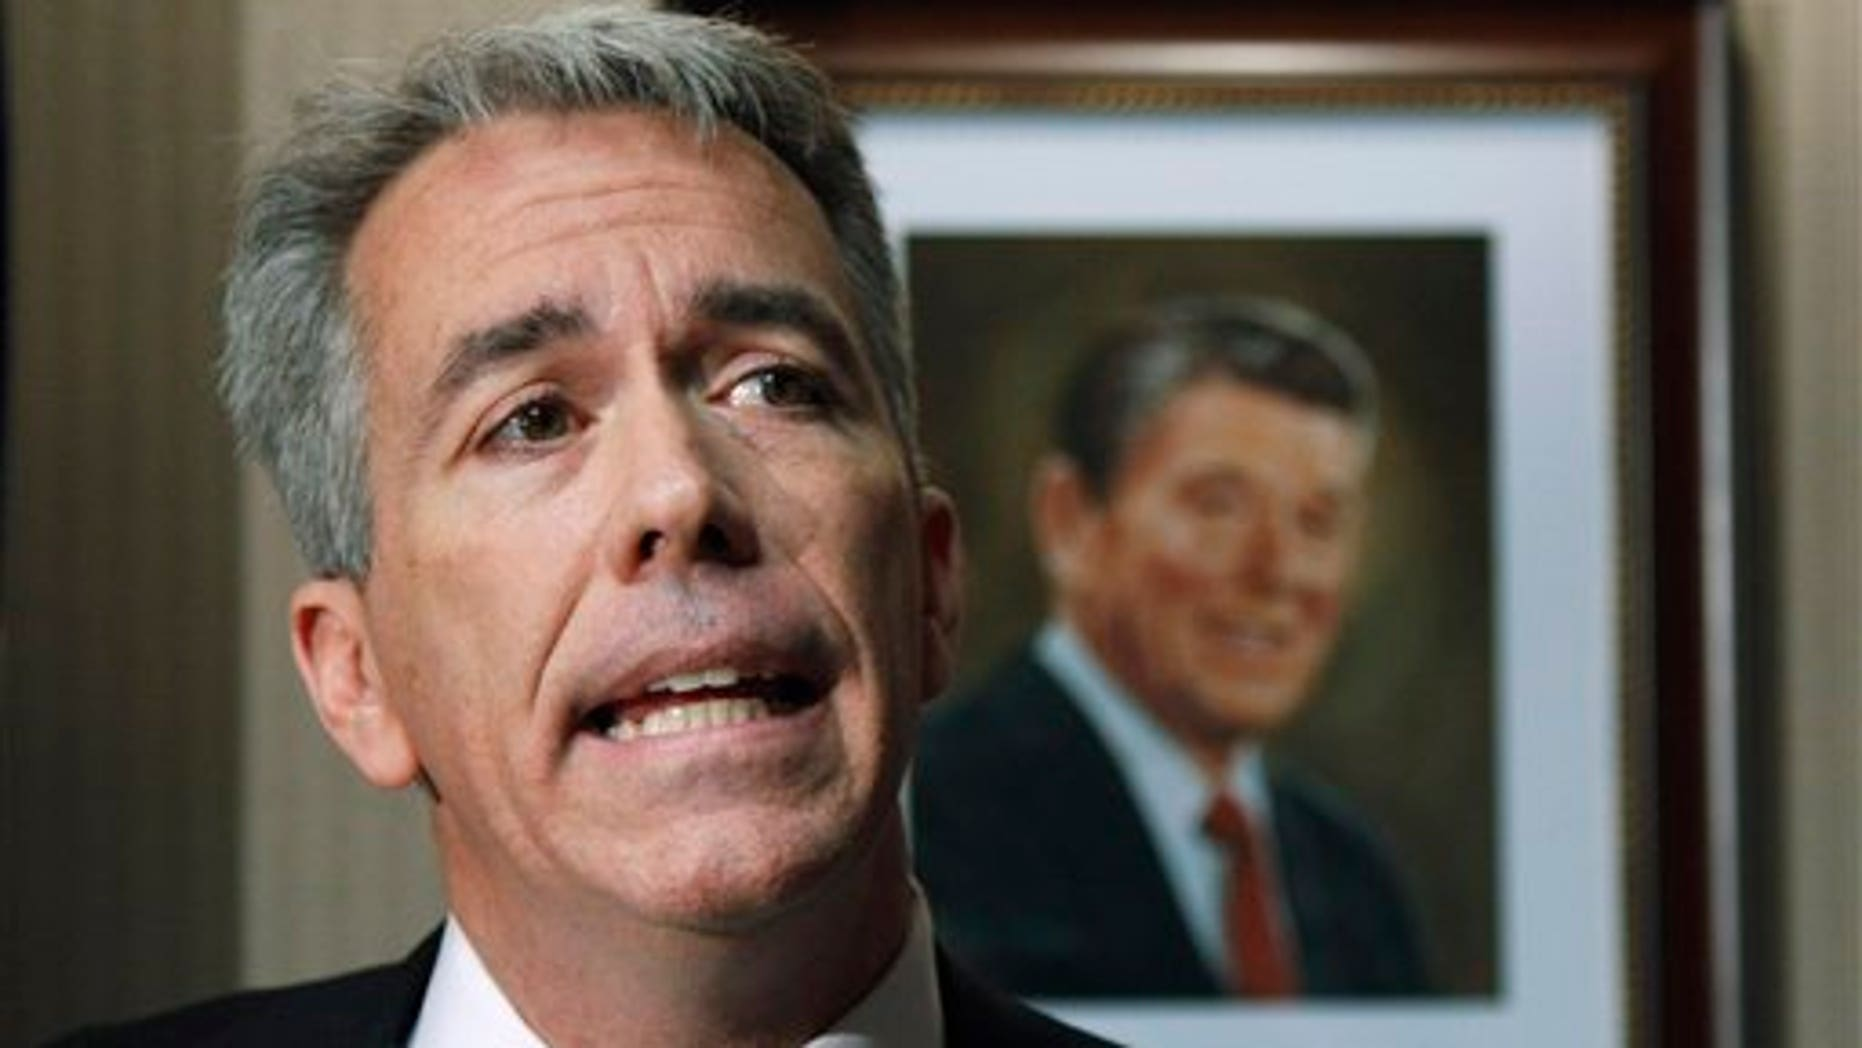 In this Nov. 17, 2010 file photo, then-Rep.-elect Joe Walsh, R-Ill., speaks on Capitol Hill in Washington.